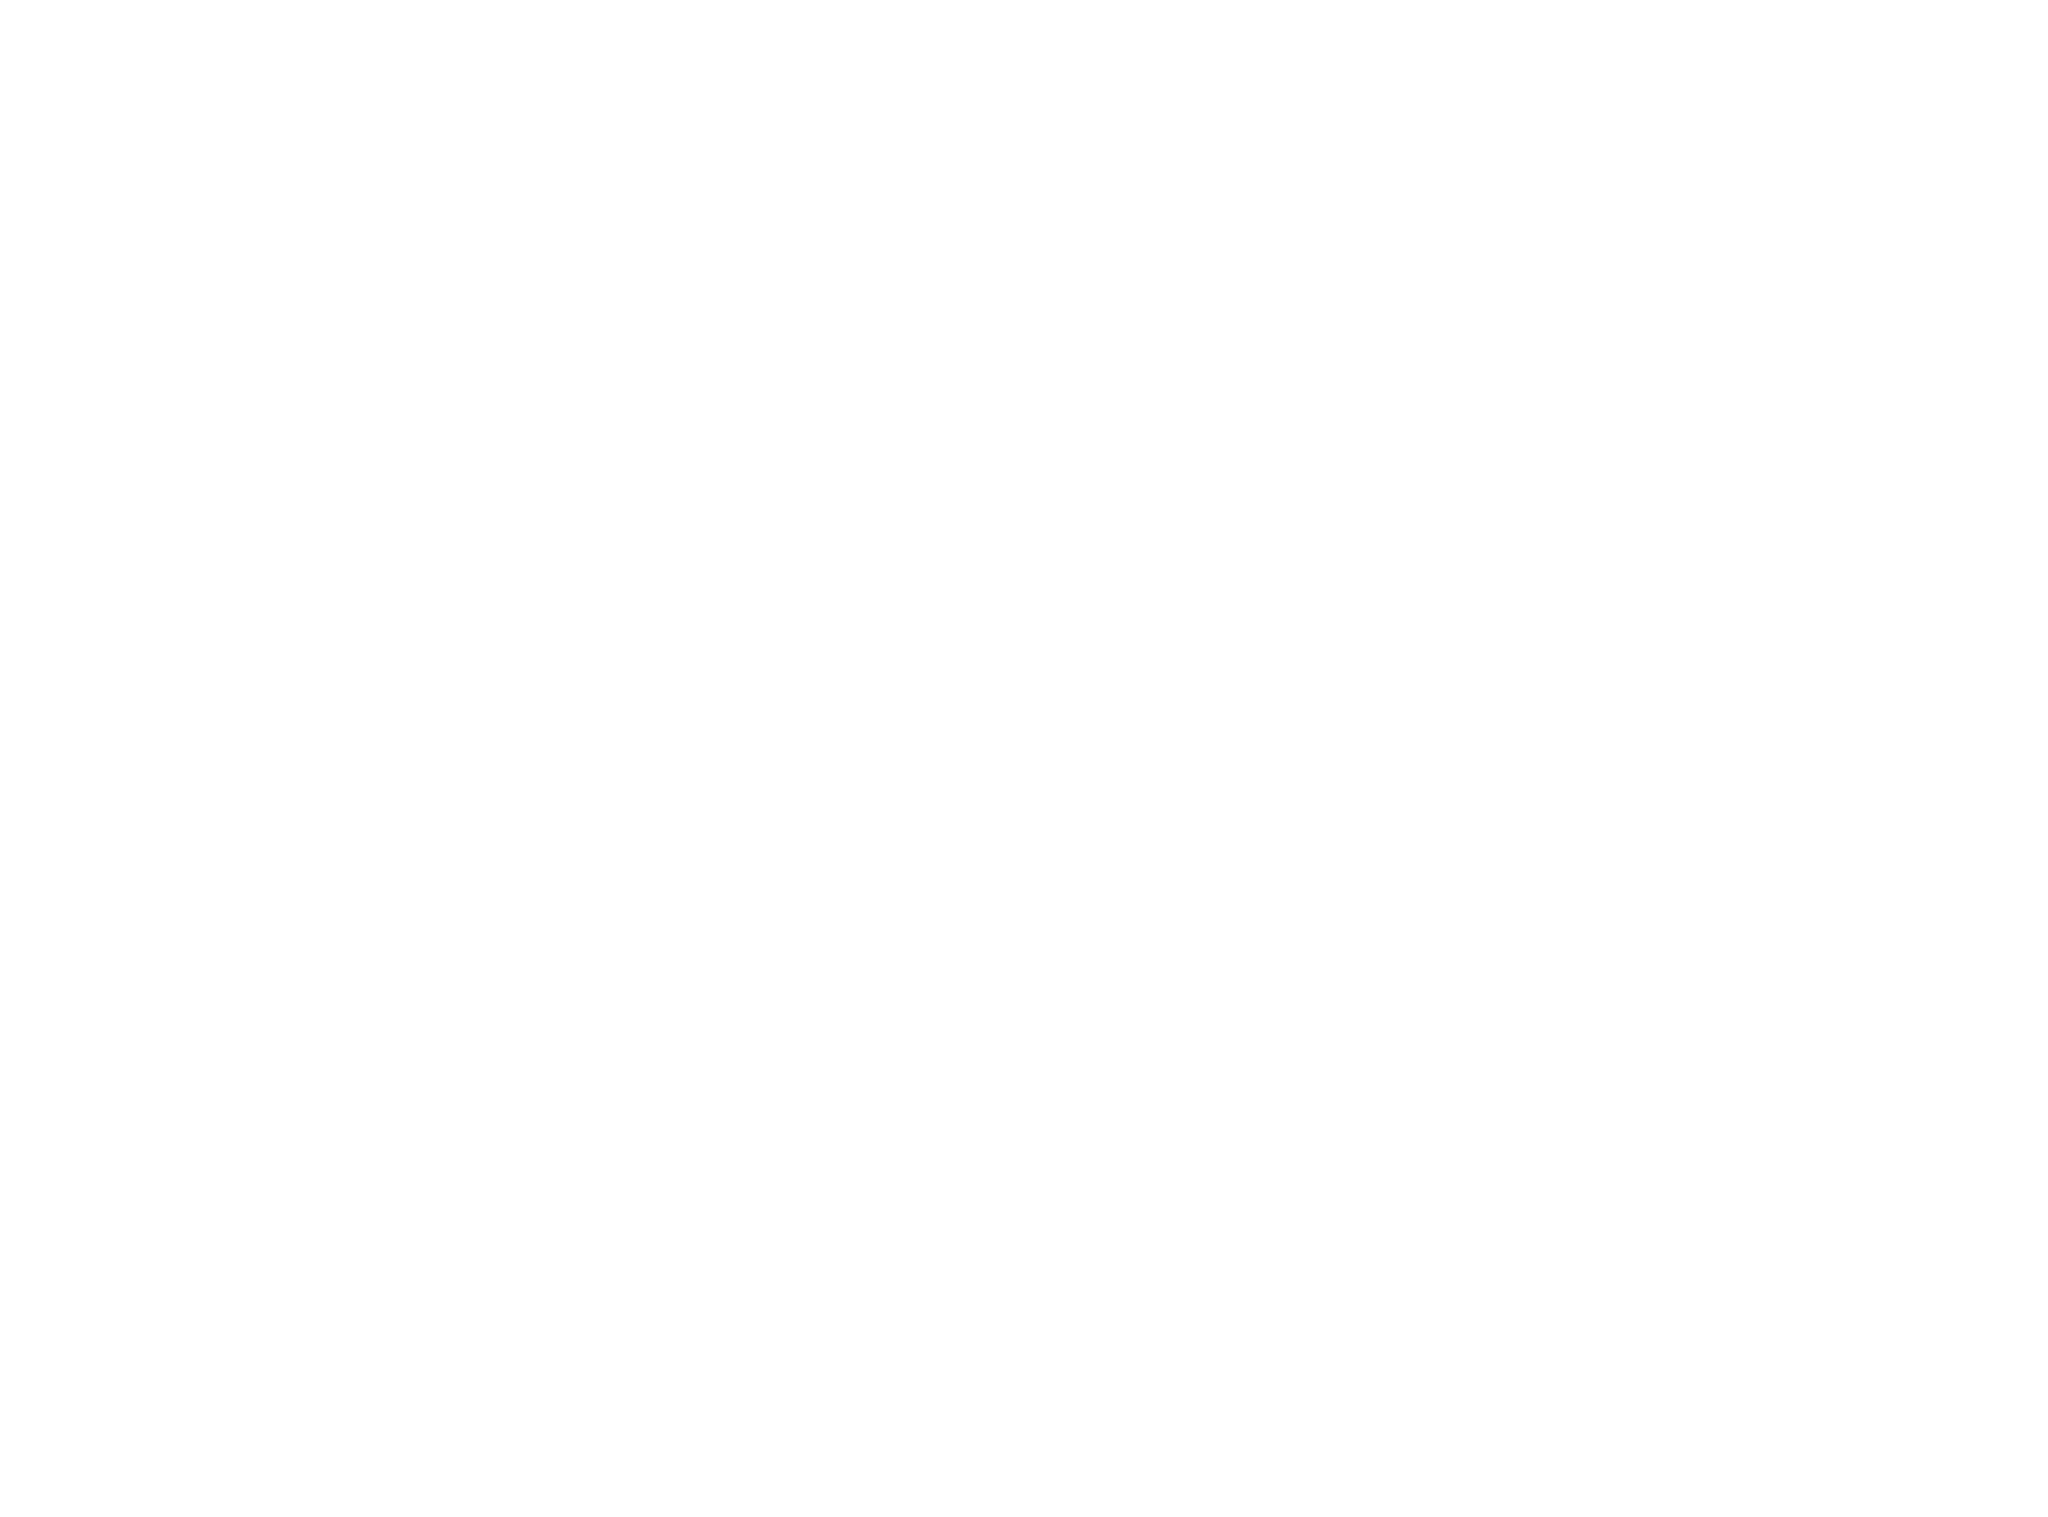 Revenge Tour is an Independent TV Festival Official Selection